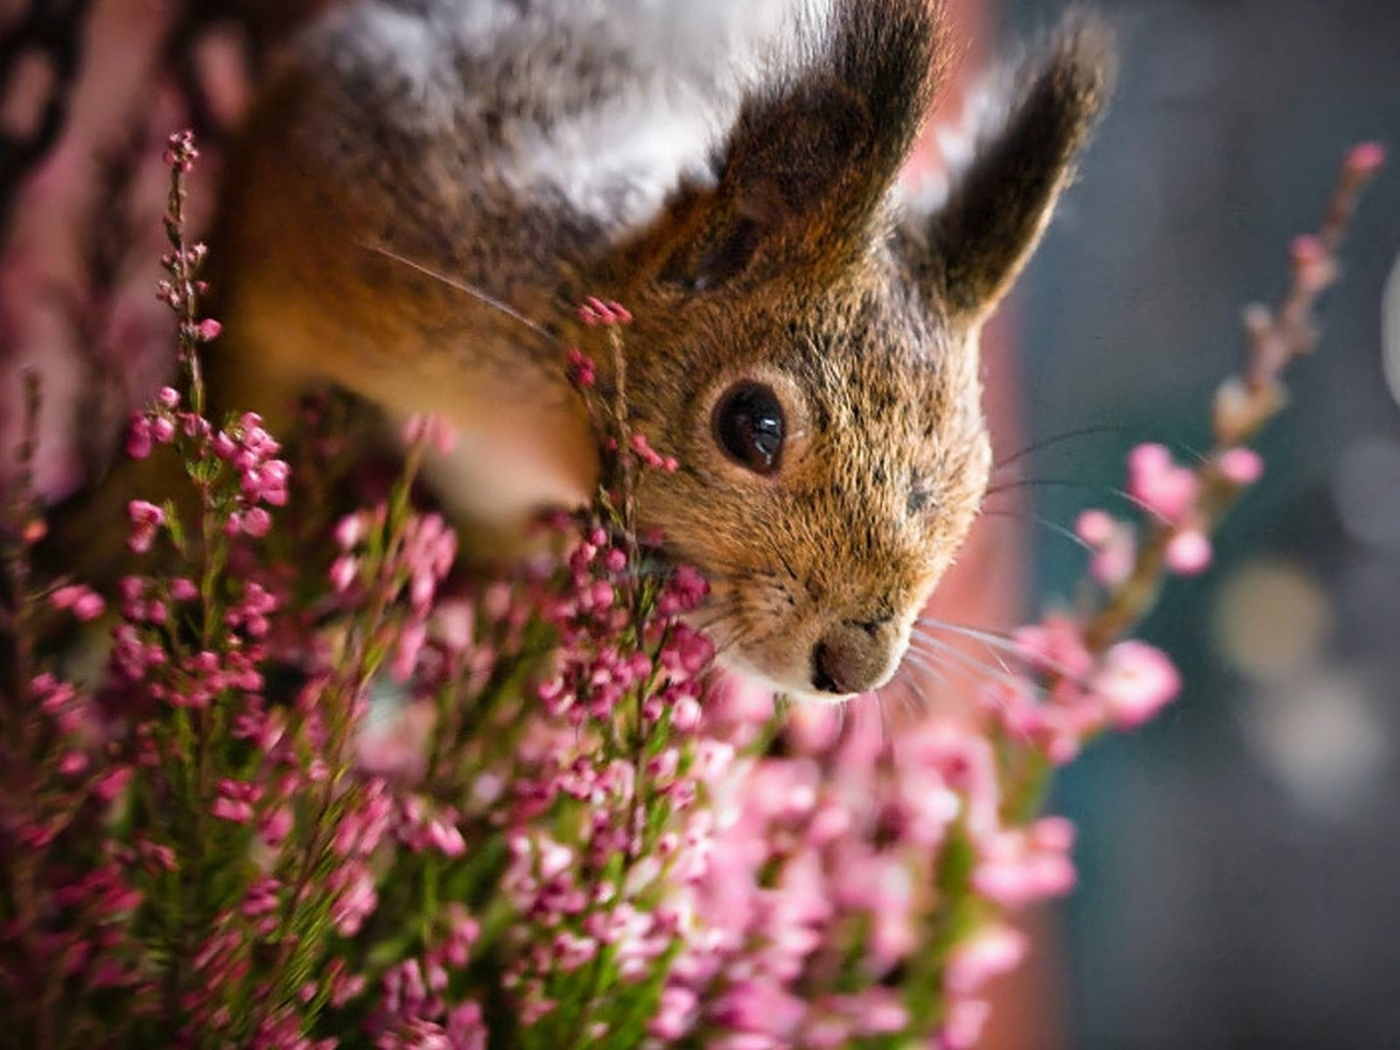 46069 download wallpaper Animals, Squirrel screensavers and pictures for free